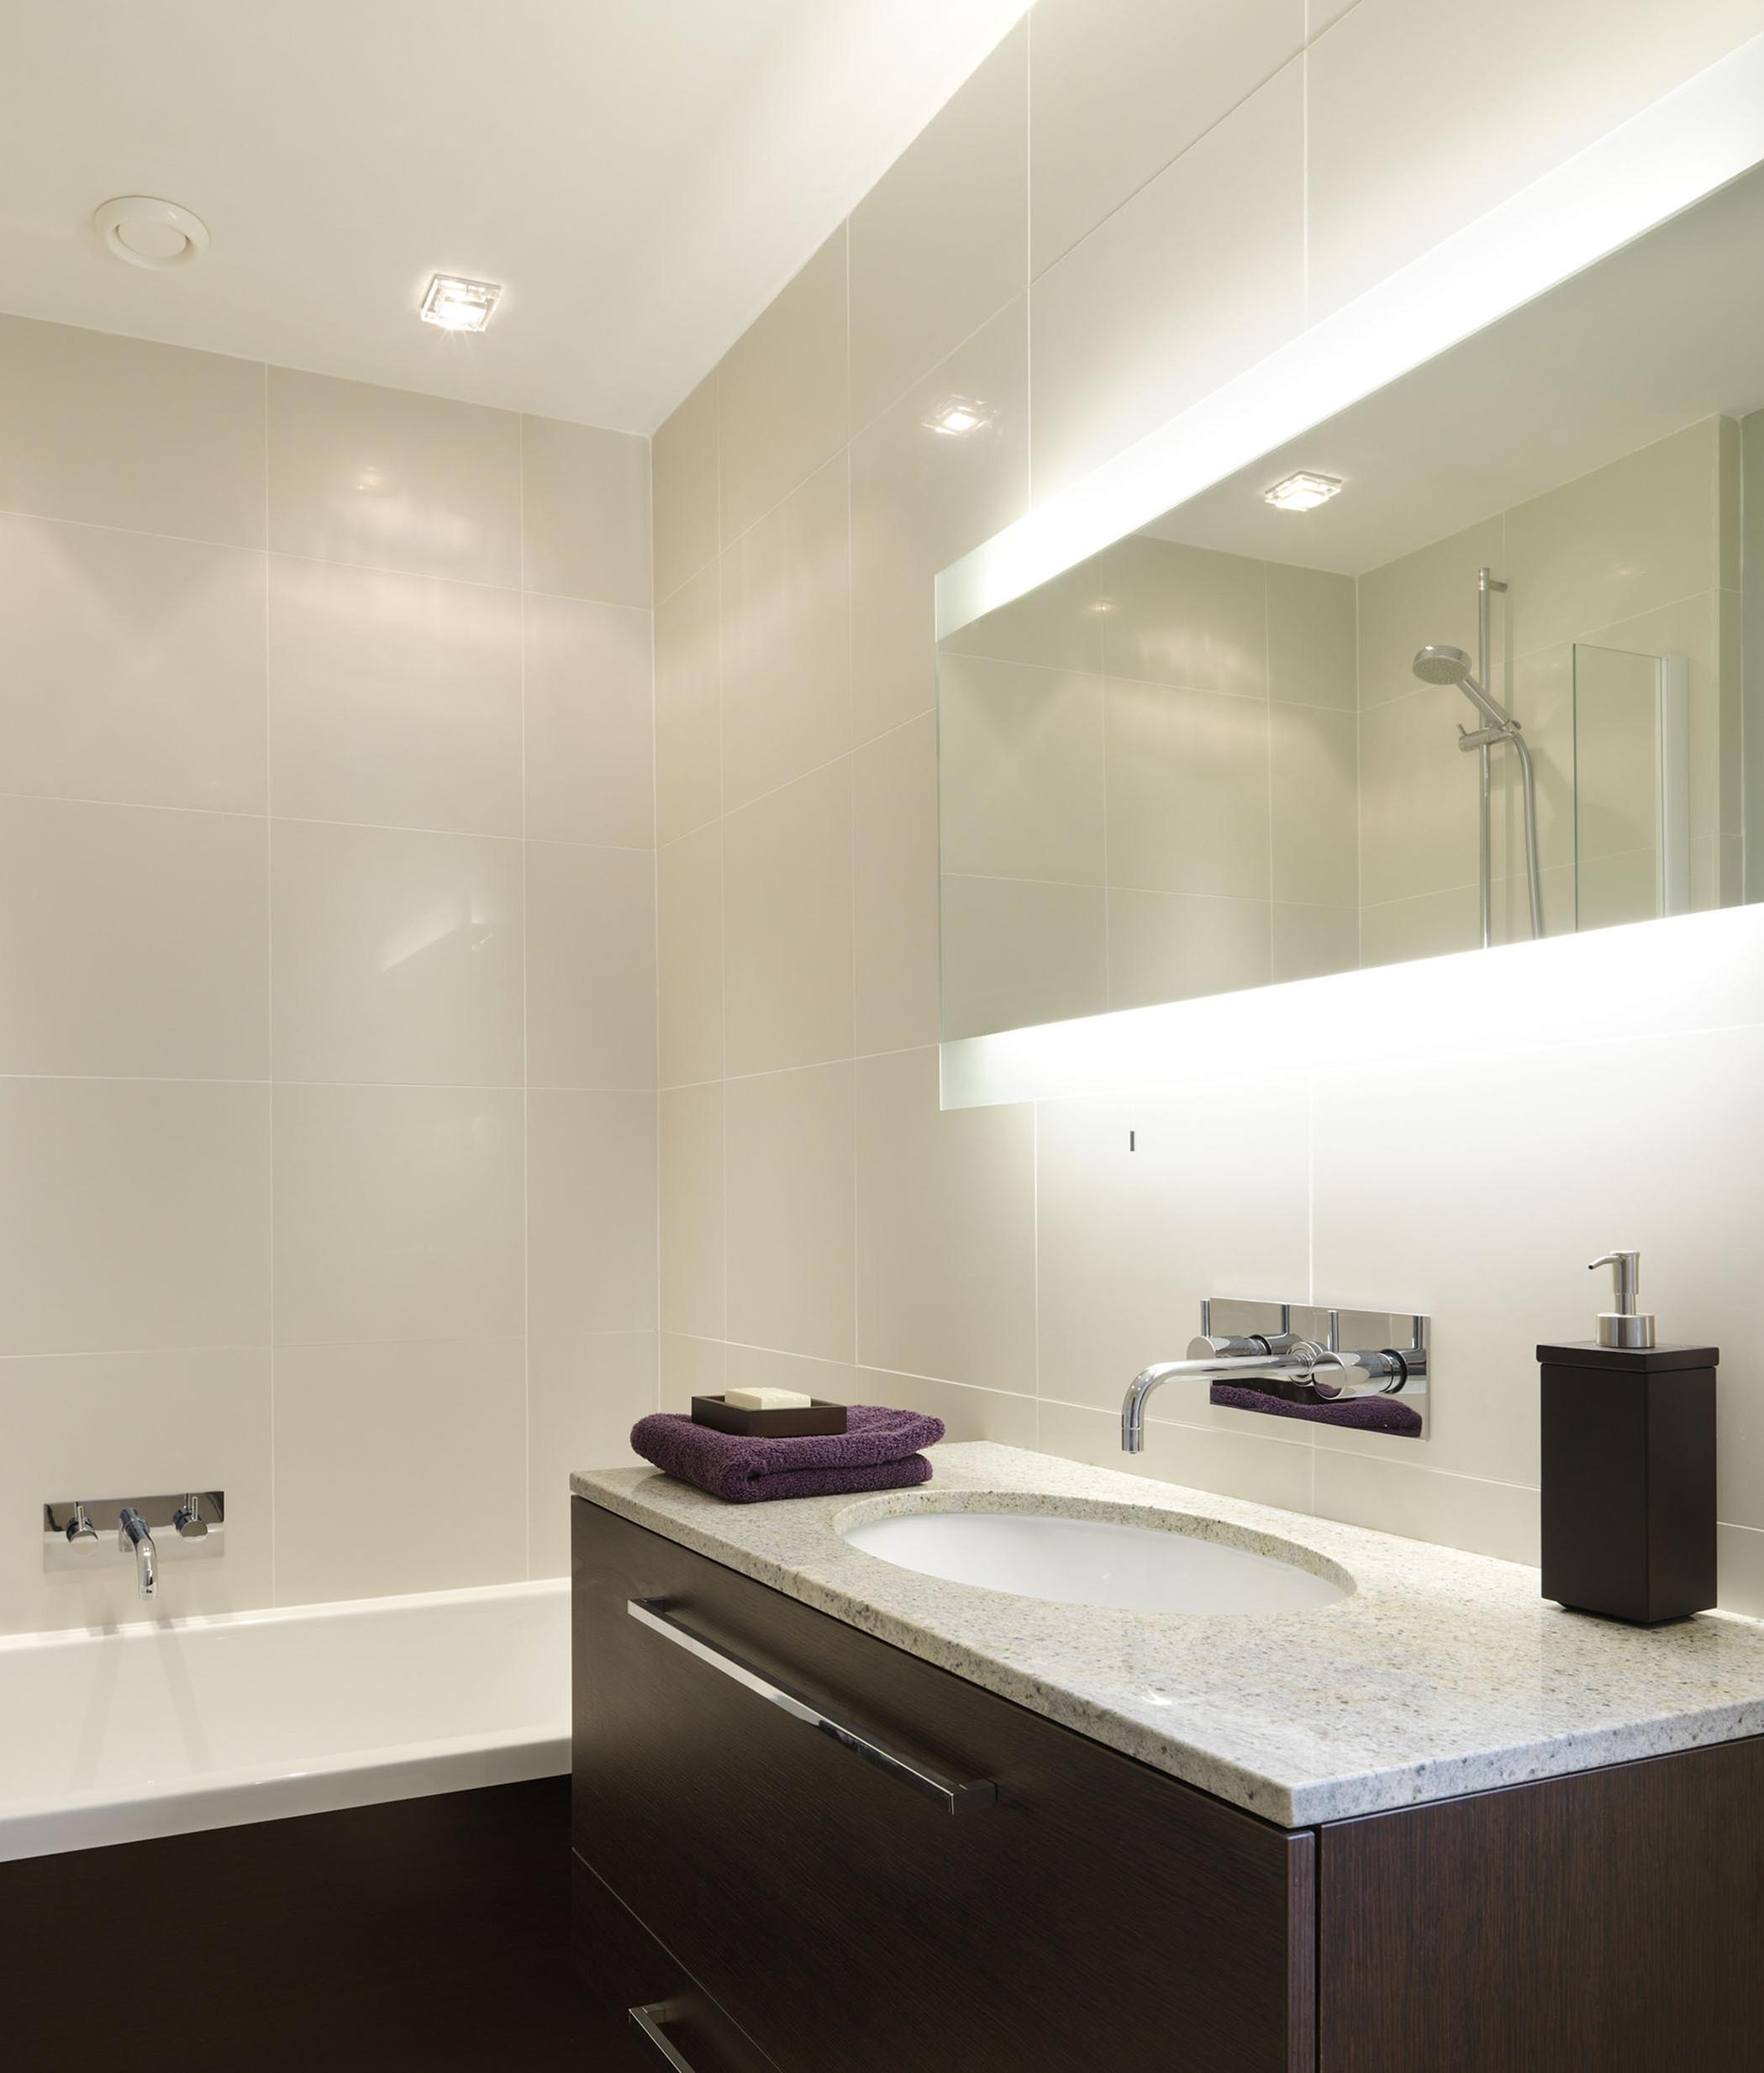 Wide And Tall Illuminated Bathroom Mirror With Backlit Effect Inside Extra Wide Bathroom Mirrors (Image 18 of 20)